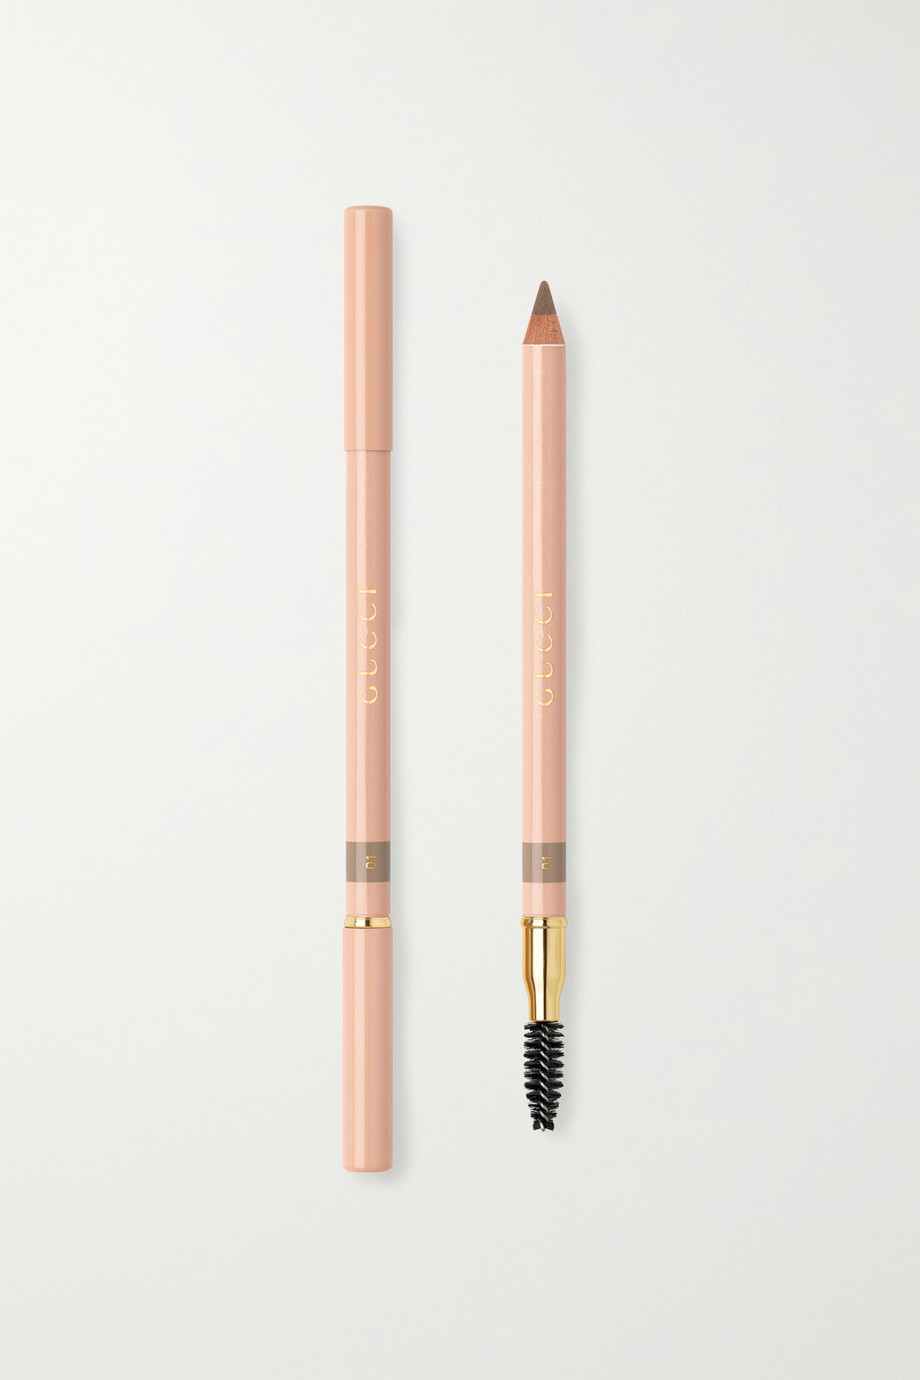 Gucci Beauty Powder Eyebrow Pencil - Taupe